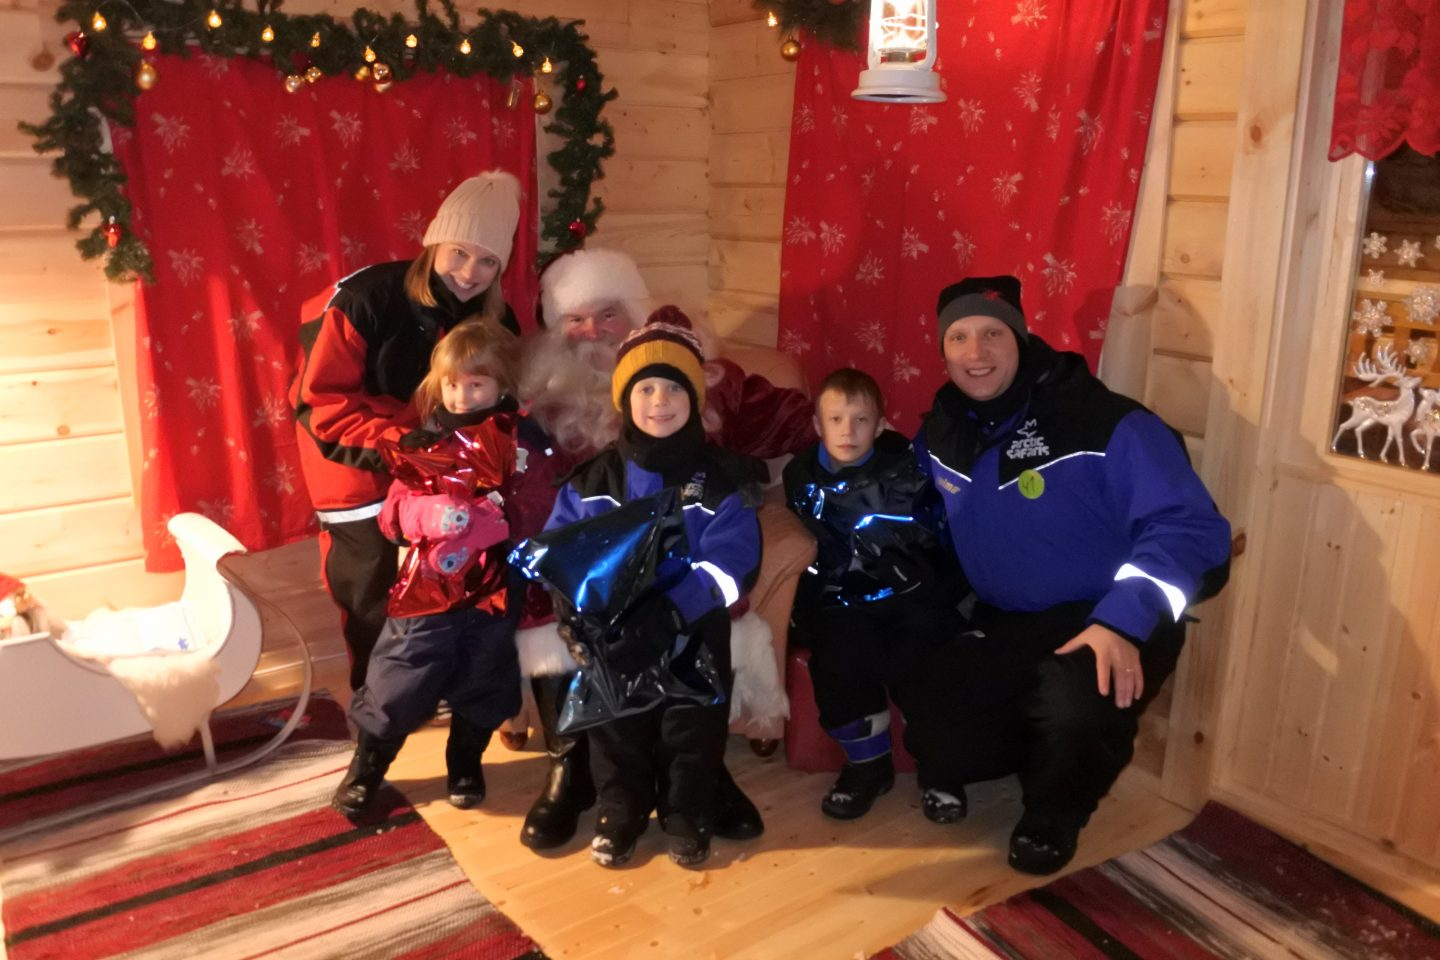 Our day in Lapland!